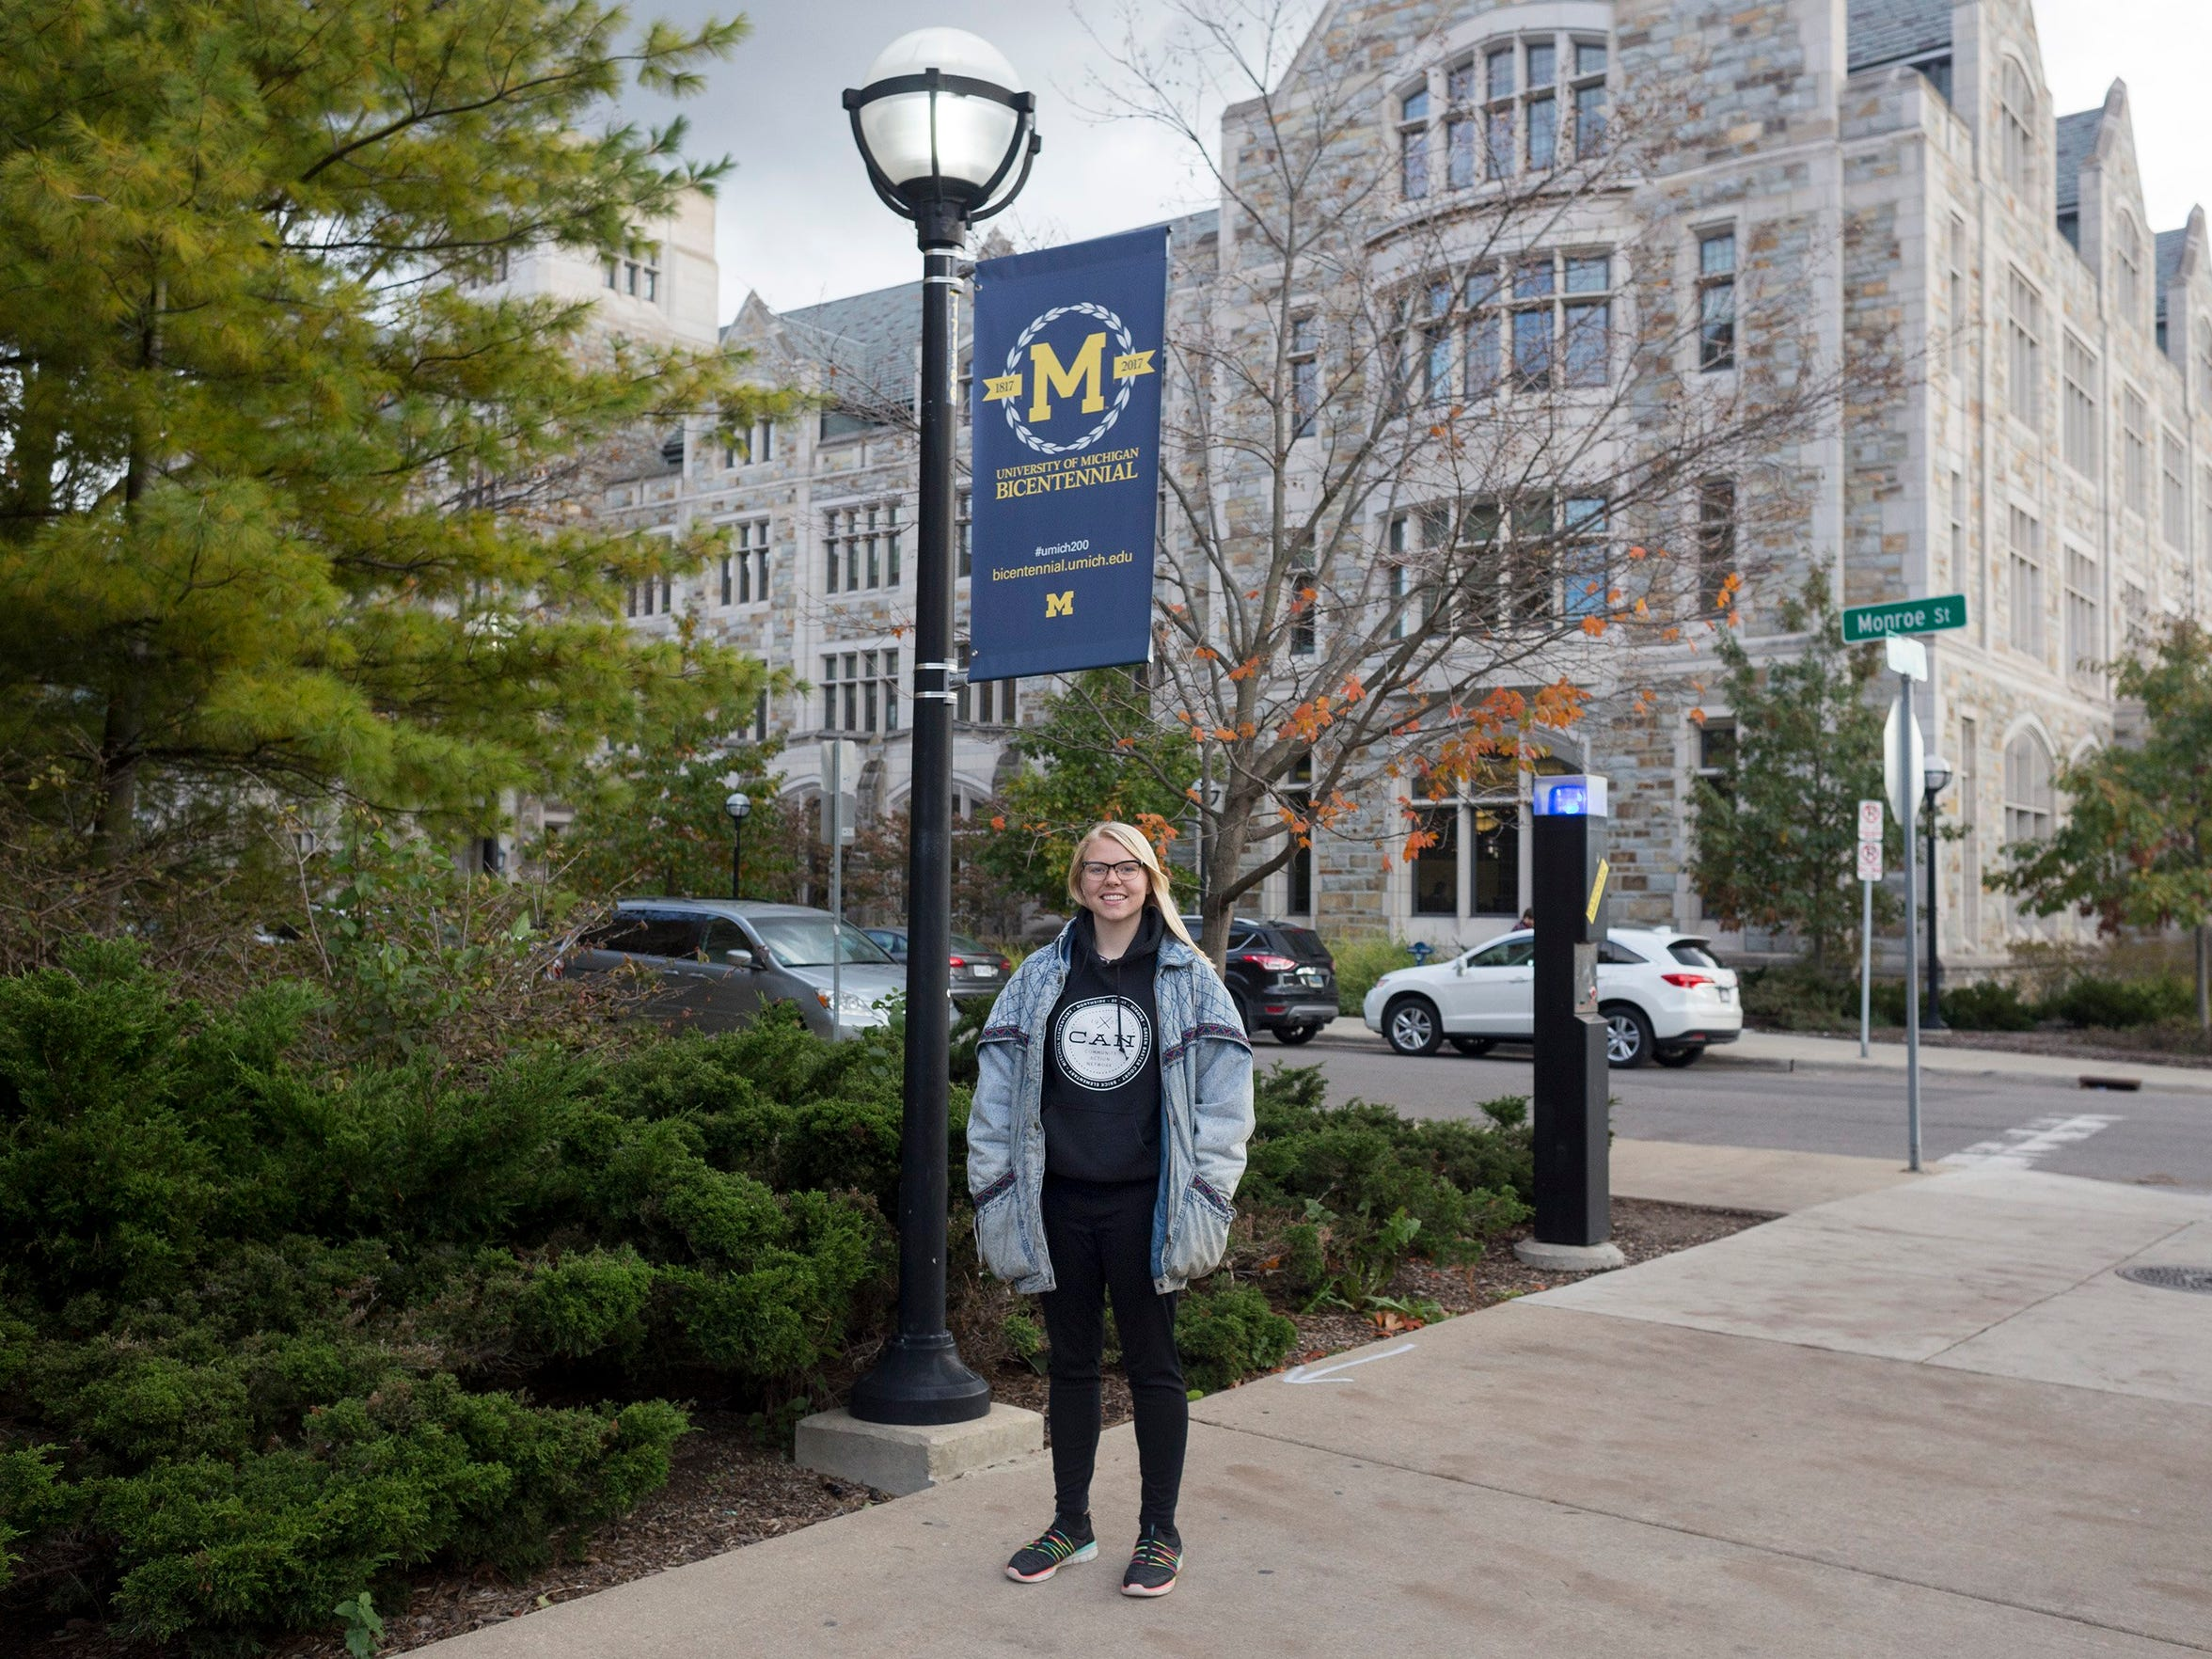 University of Michigan student Libby Gazley on campus in Ann Arbor on Wednesday, Oct. 25, 2017.  Gazley held down two jobs while studying for a social work degree.